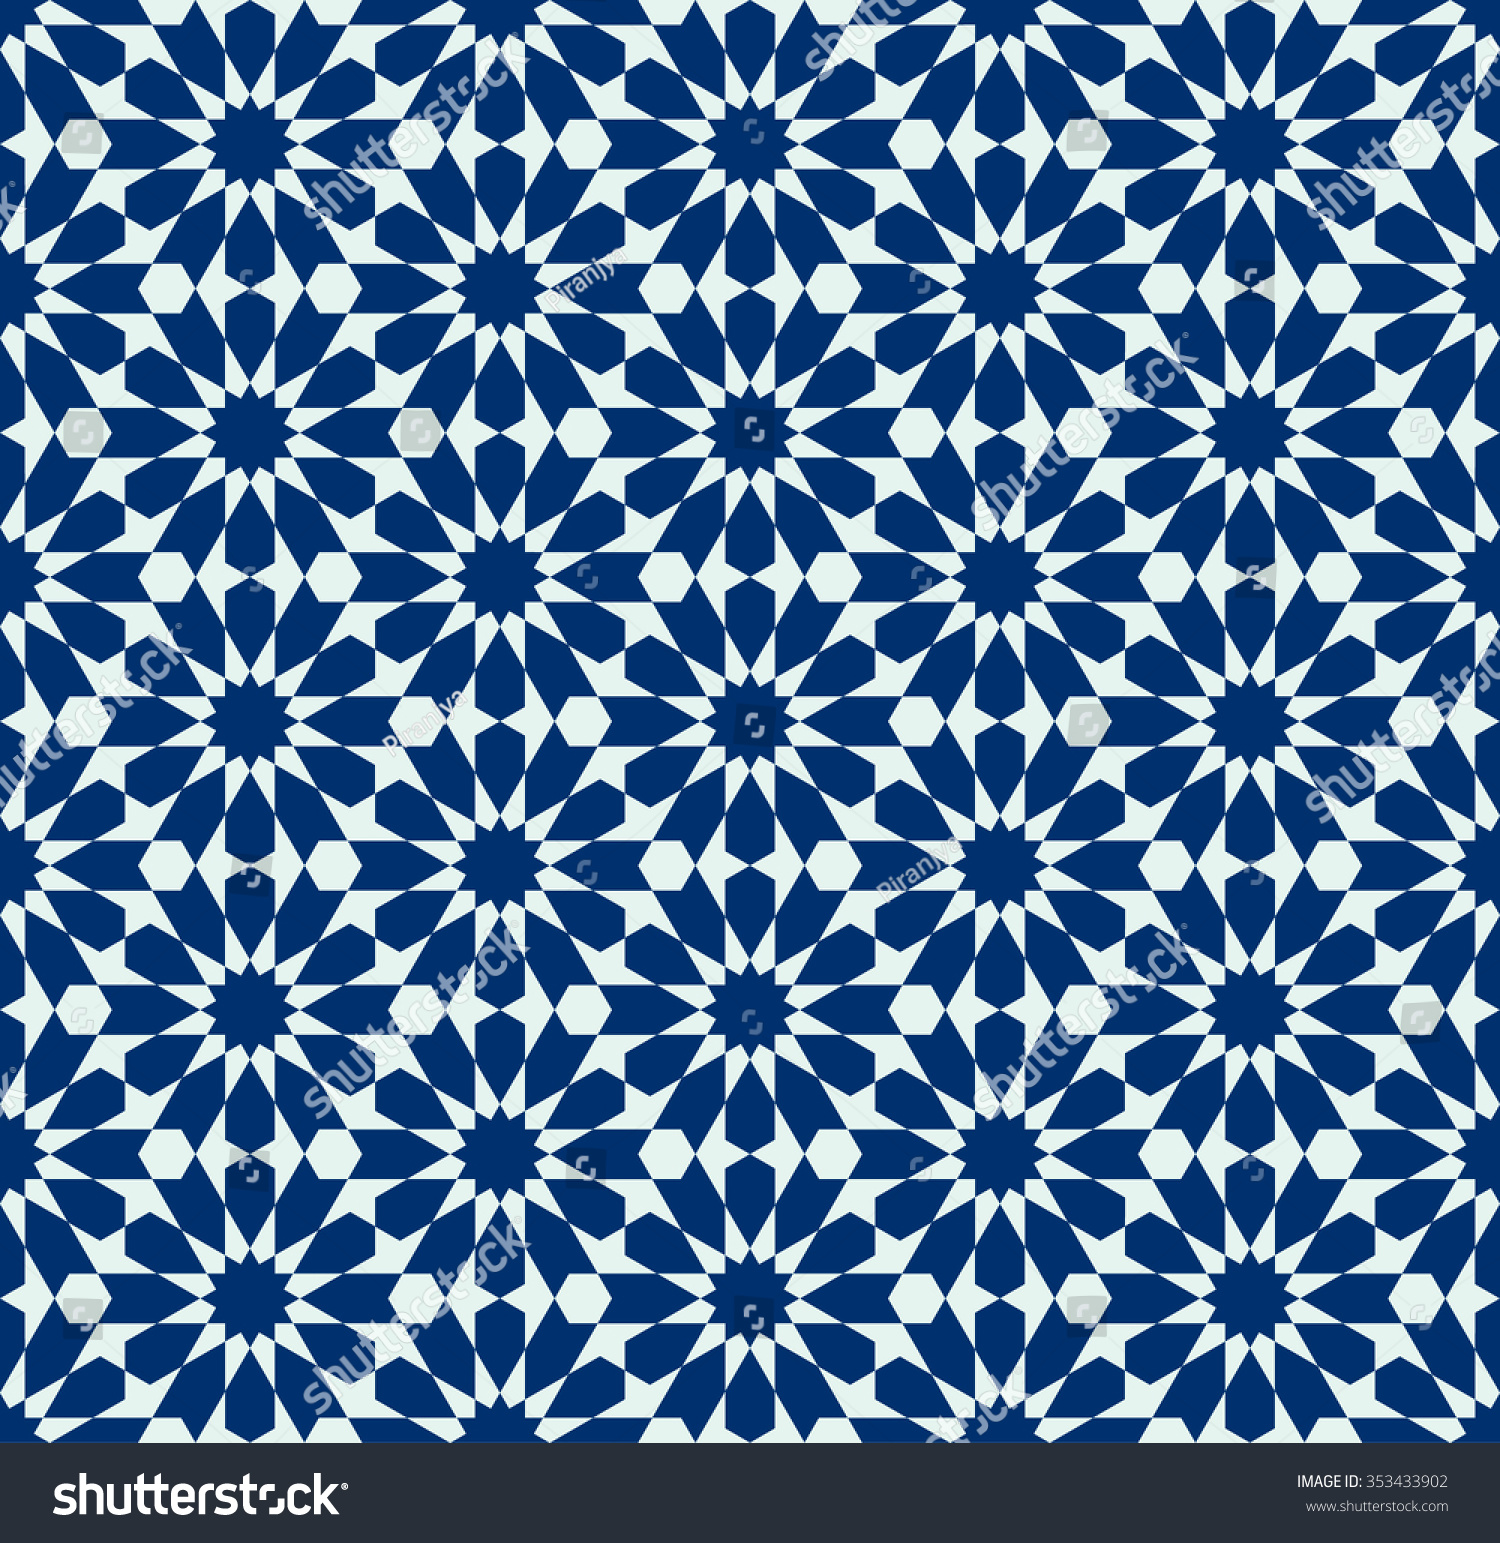 Moroccan geometric pattern royalty free stock photos image 13547078 - Filename Stock Vector Seamless Pattern In Moroccan Style Islamic Traditional Tile Ornament Geometric Background Vector 353433902 Jpg